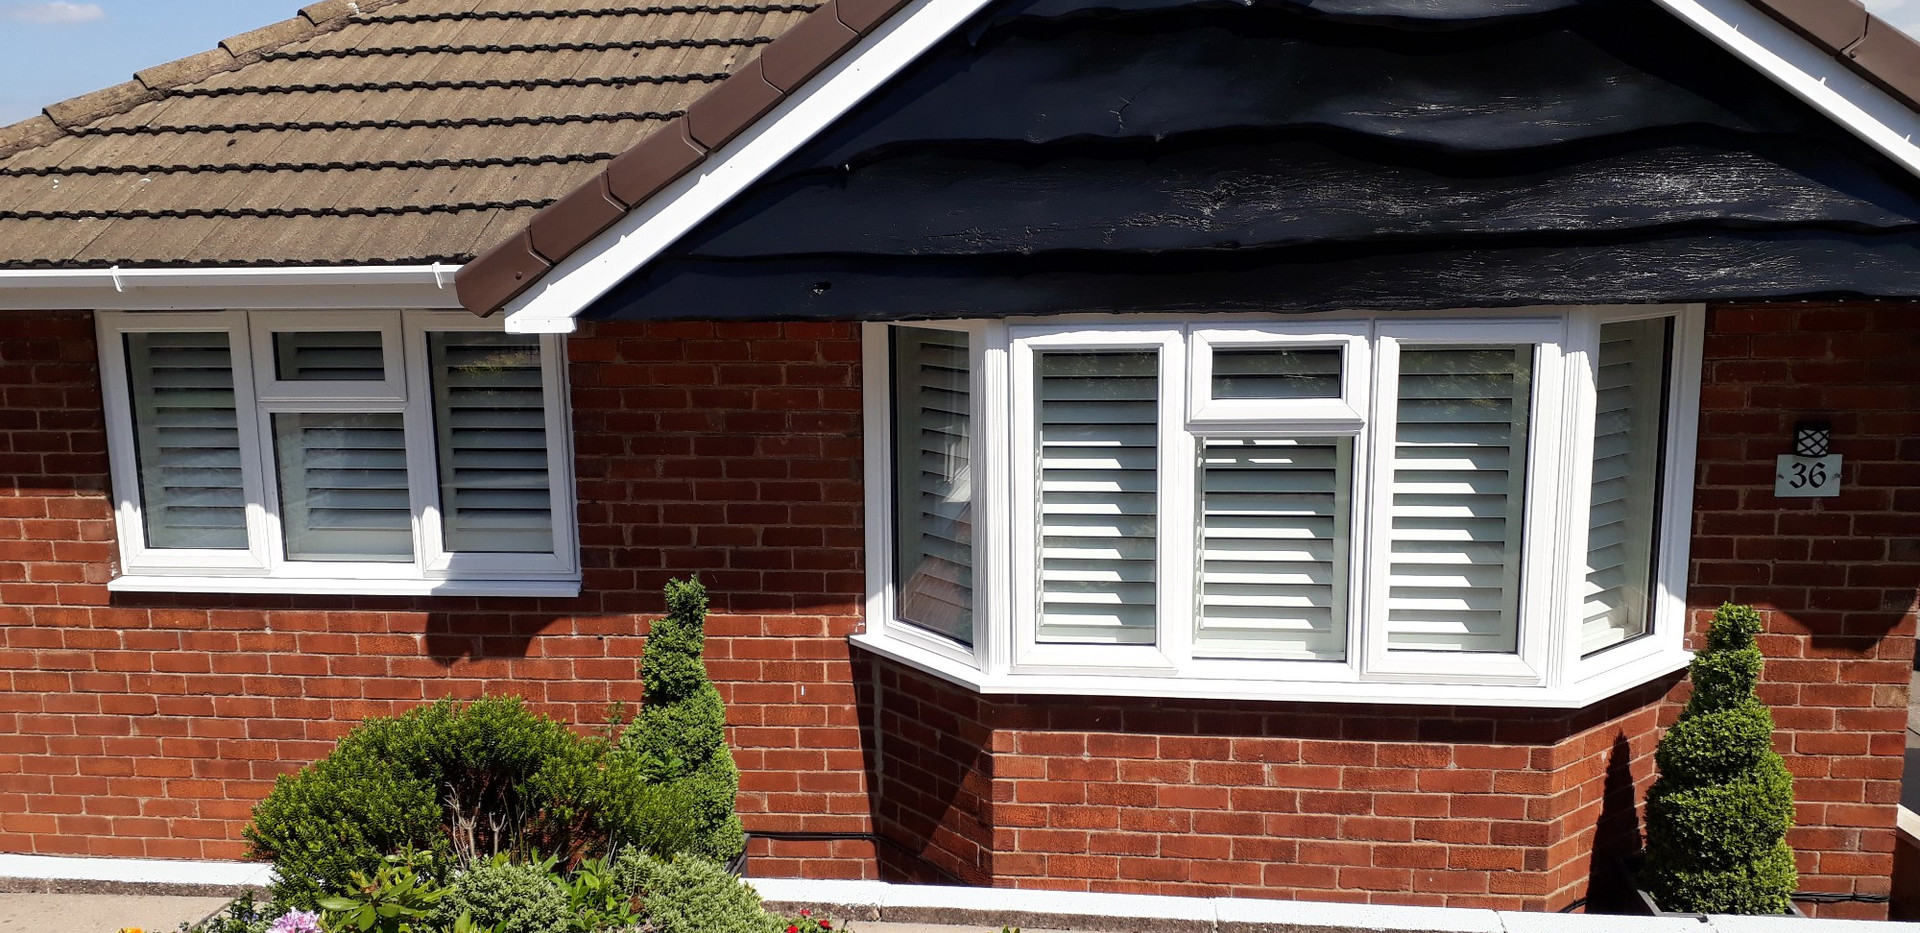 Outside view of shutters